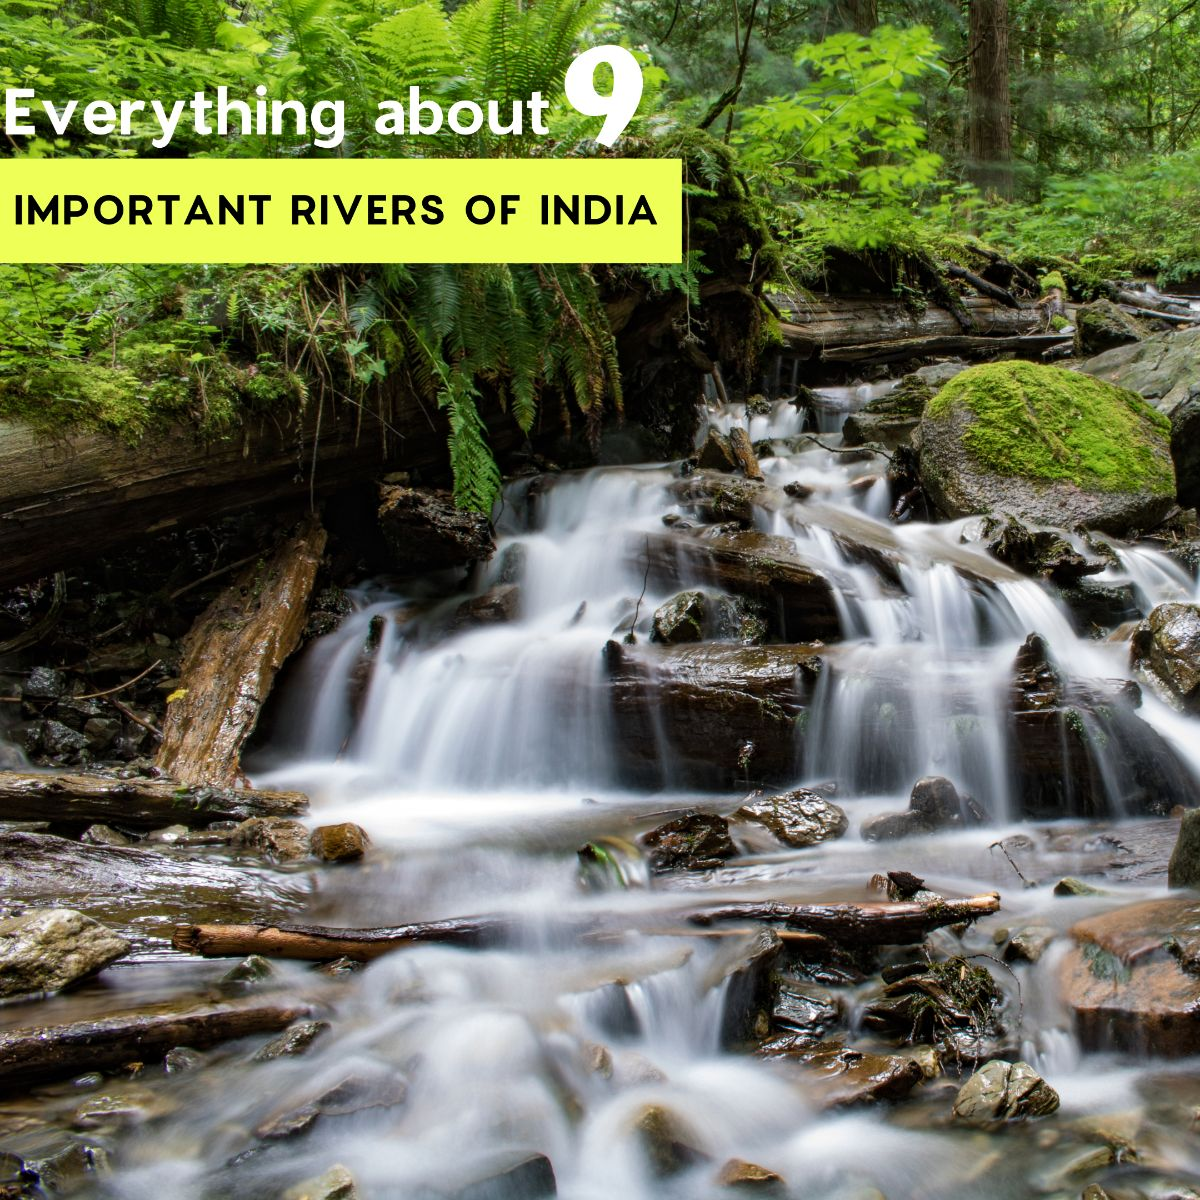 Everything about the 9 Important Rivers of India!